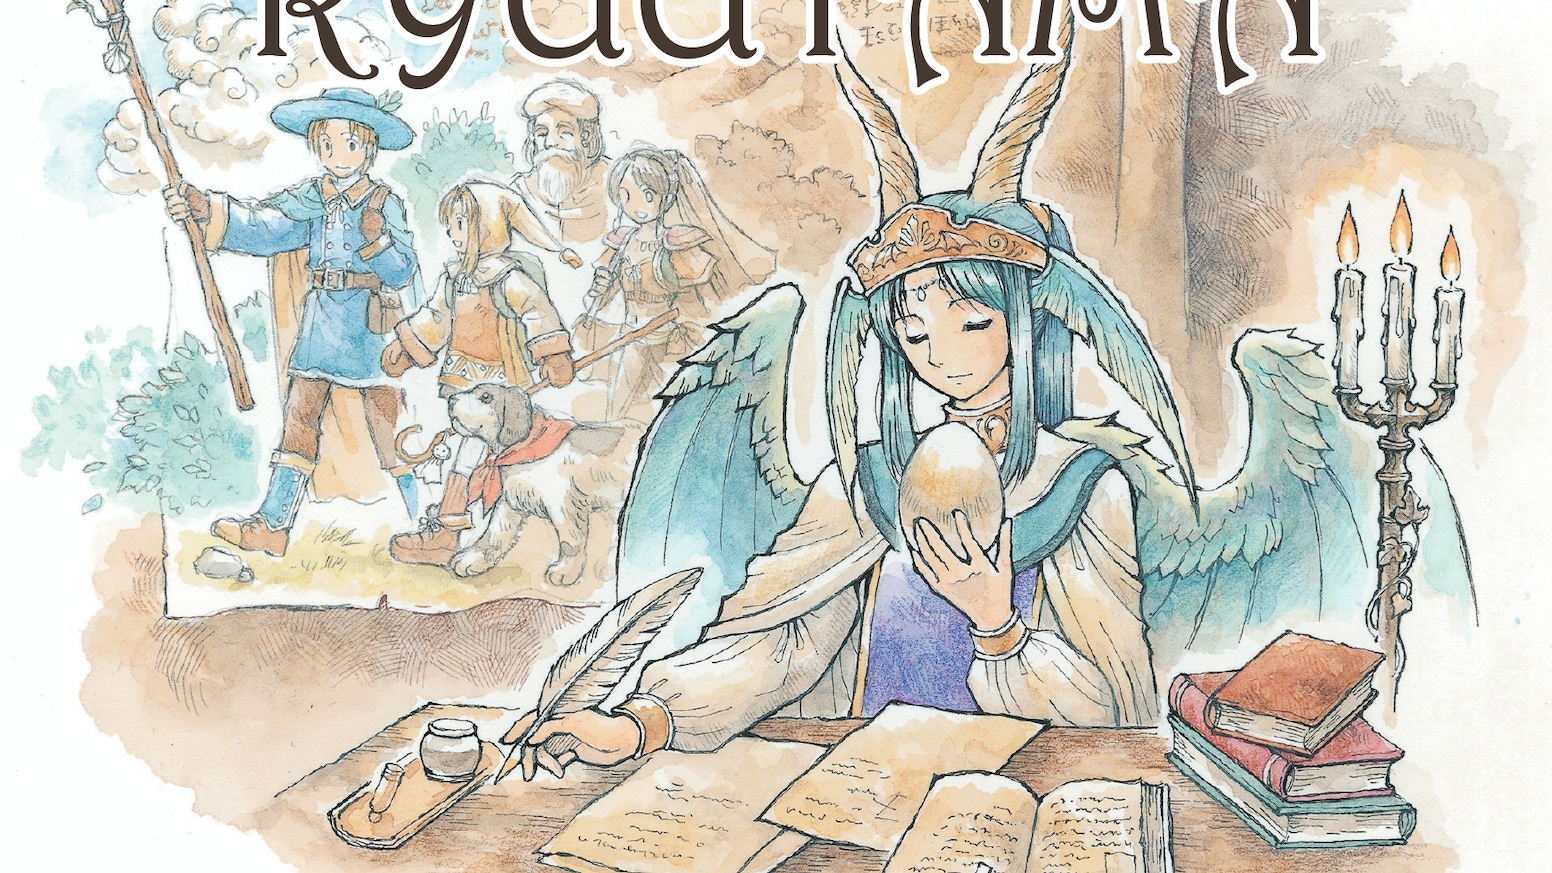 Ryuutama is an original Japanese heartwarming tabletop RPG of travel and wonder, currently being translated for release in English!